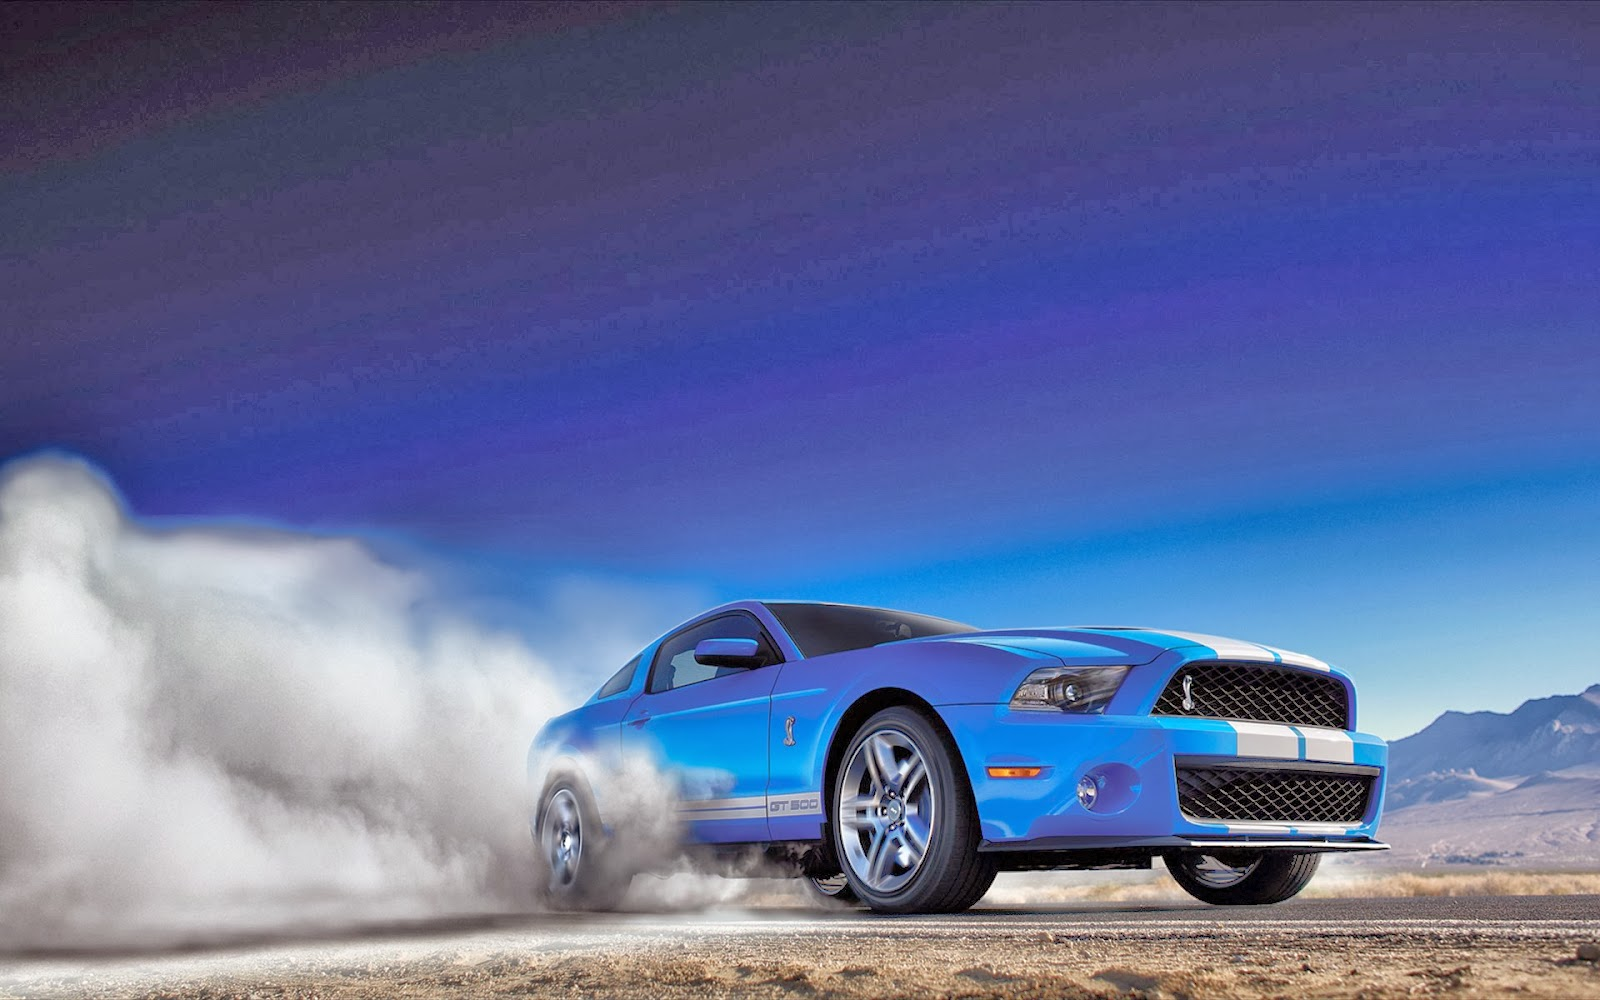 Cars Wallpapers: Full HD Wallpapers Collection: Car Full HD Widescreen